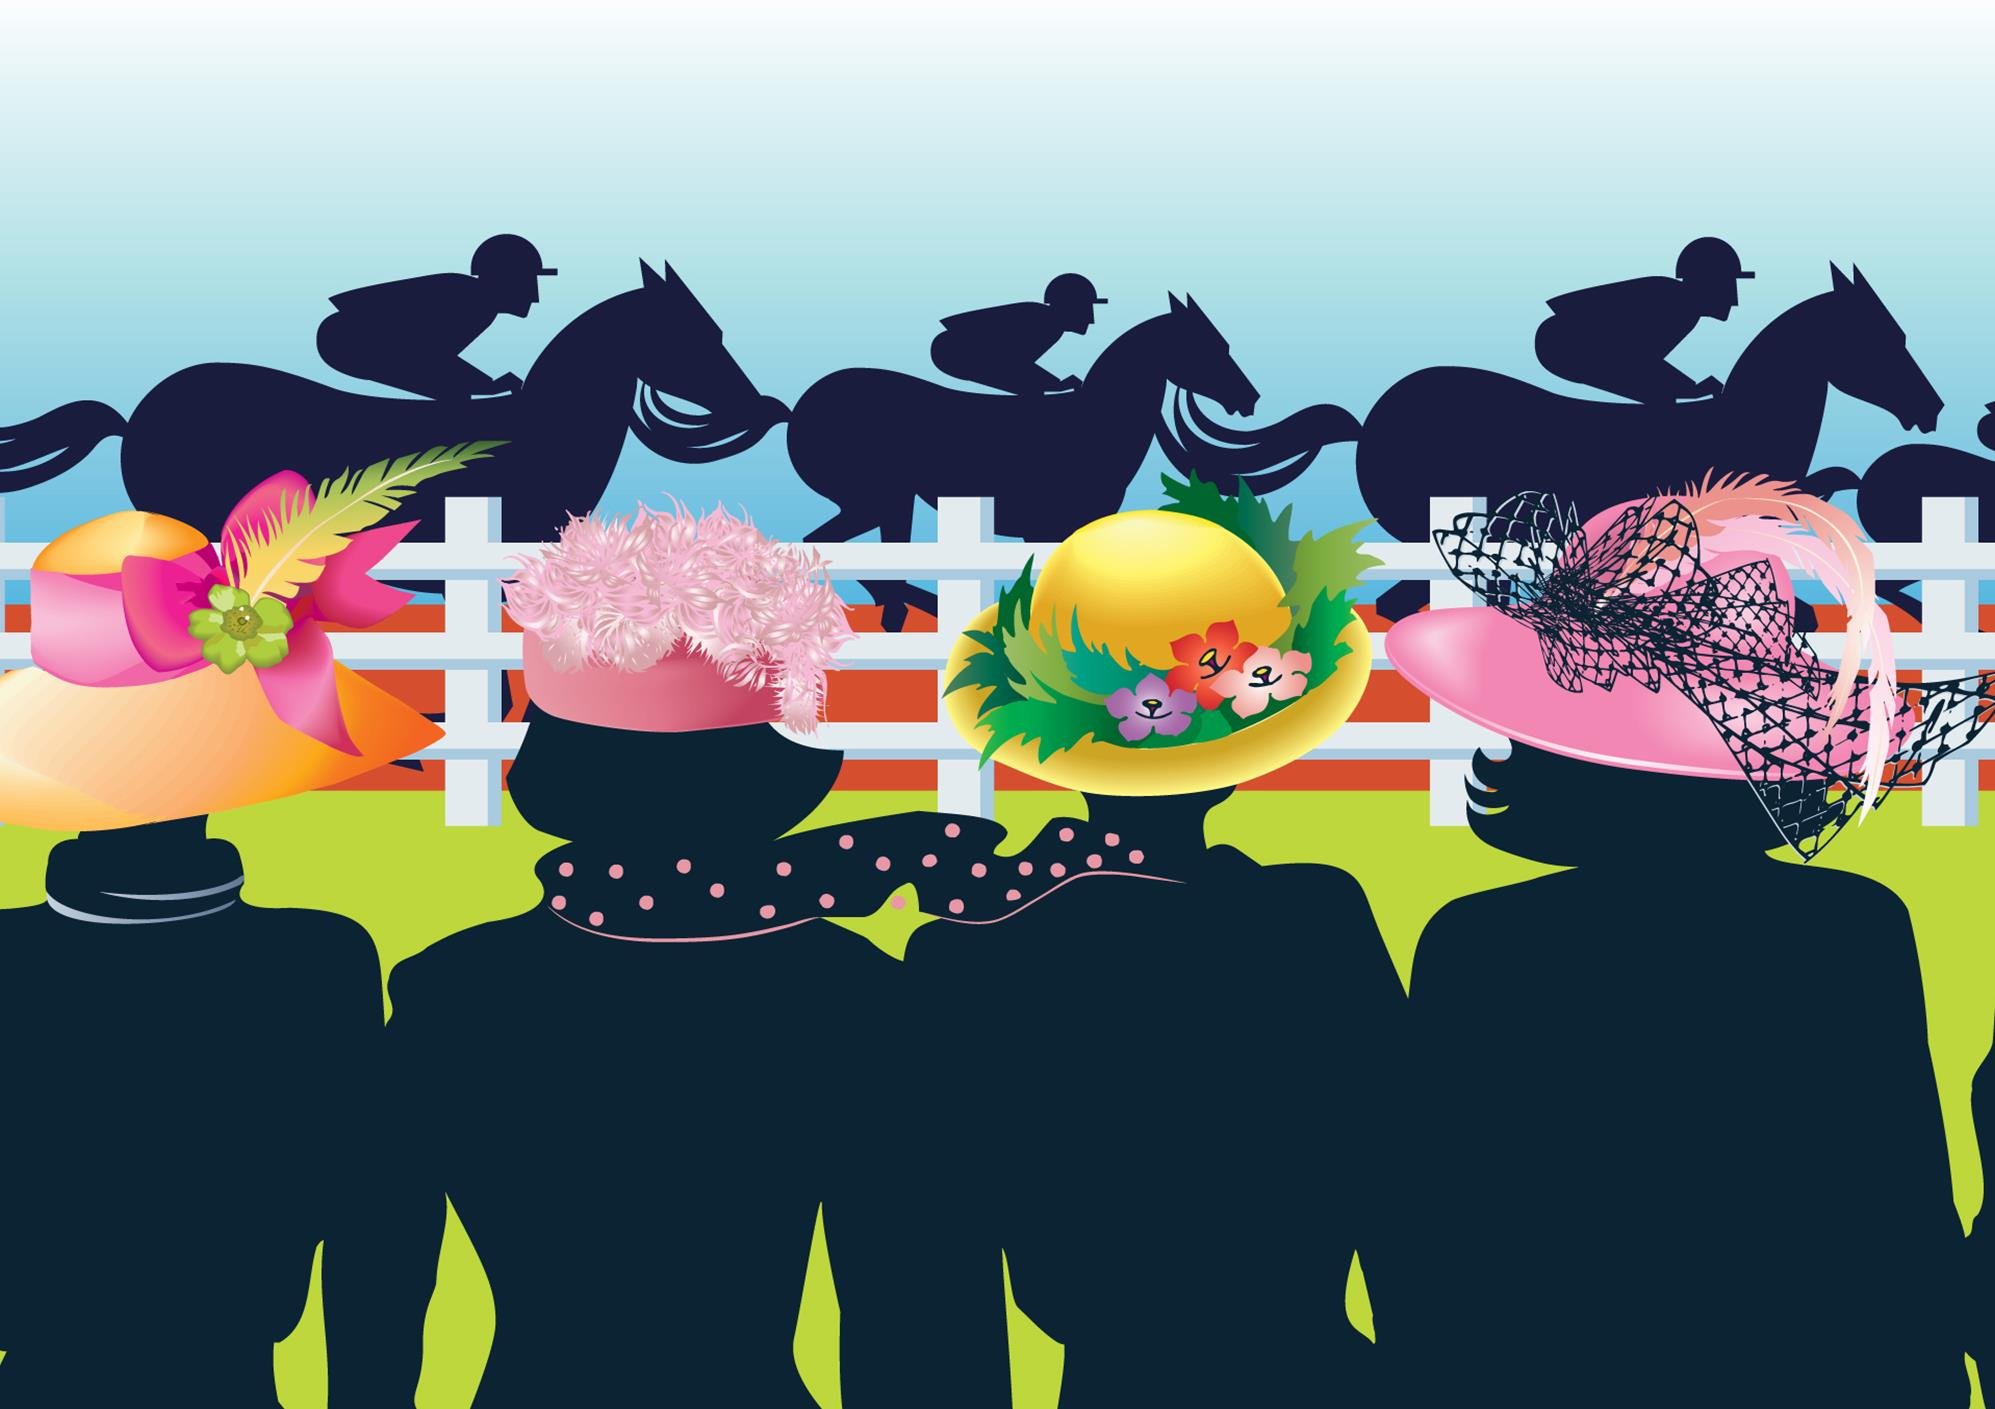 Ascot day clipart free download Conference and Event Hire Birmingham - upcoming dates | LNP Sound free download